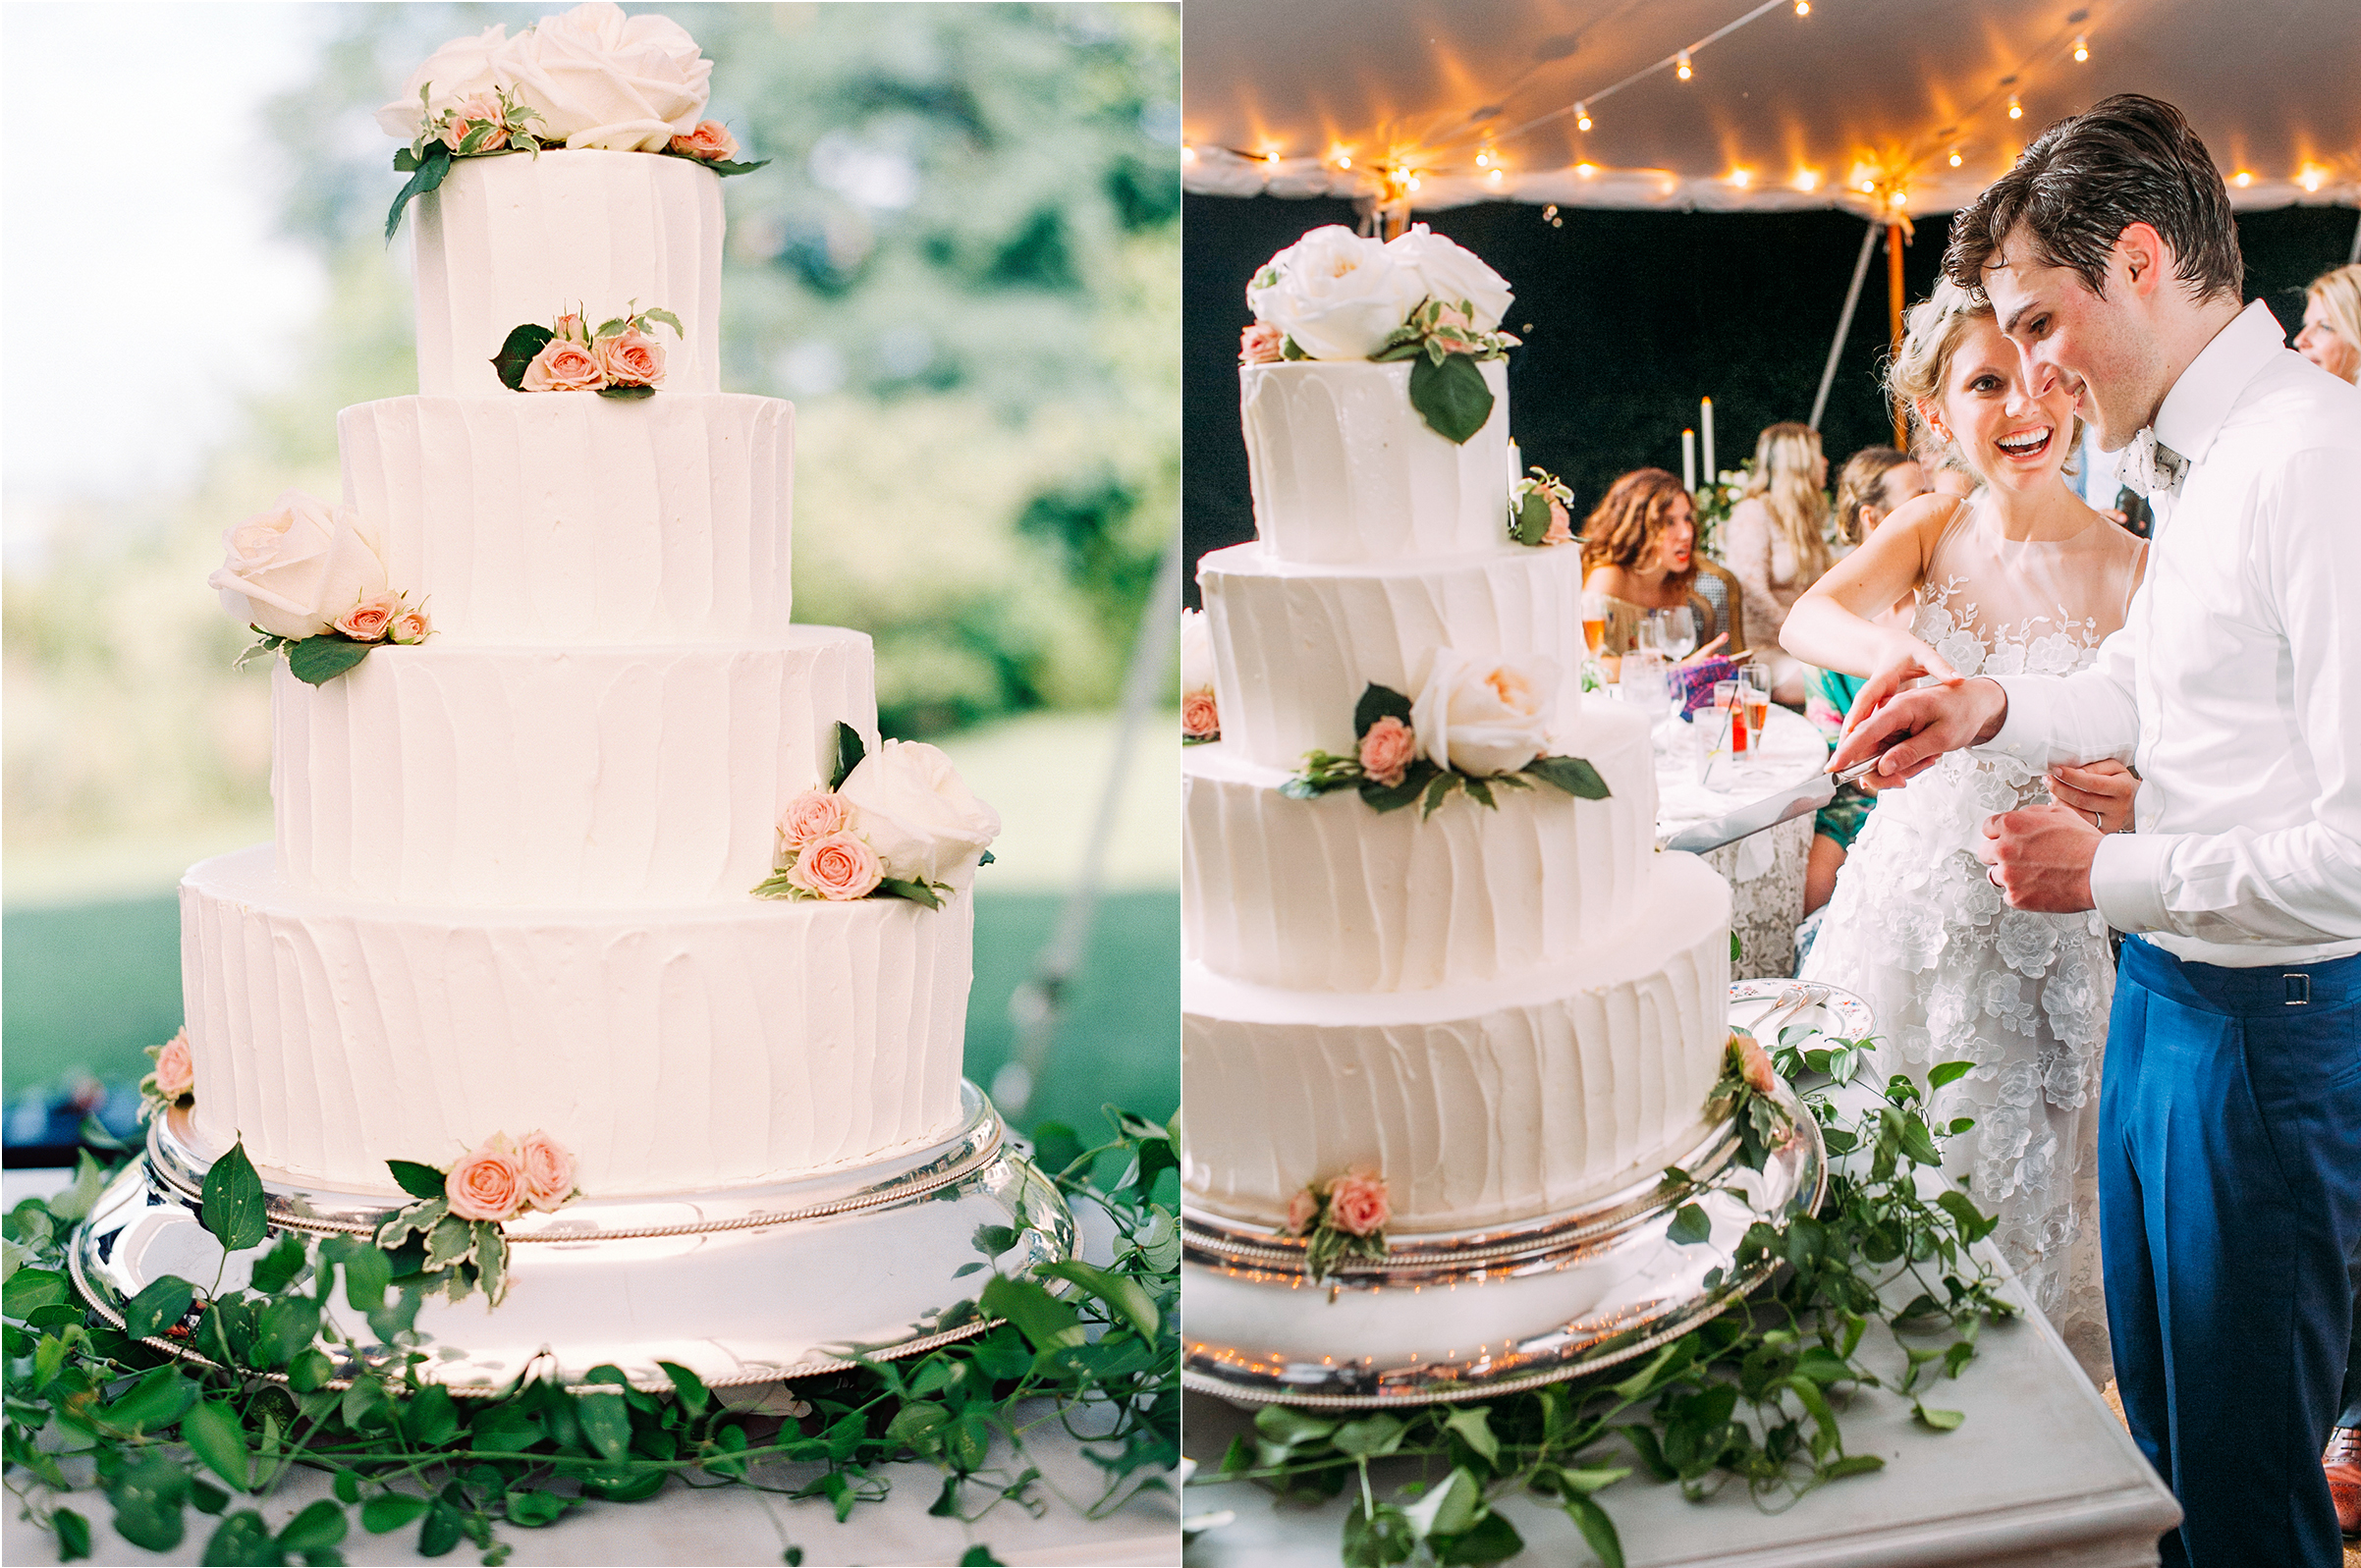 katie stoops photography-inn at perry cabin wedding44.jpg